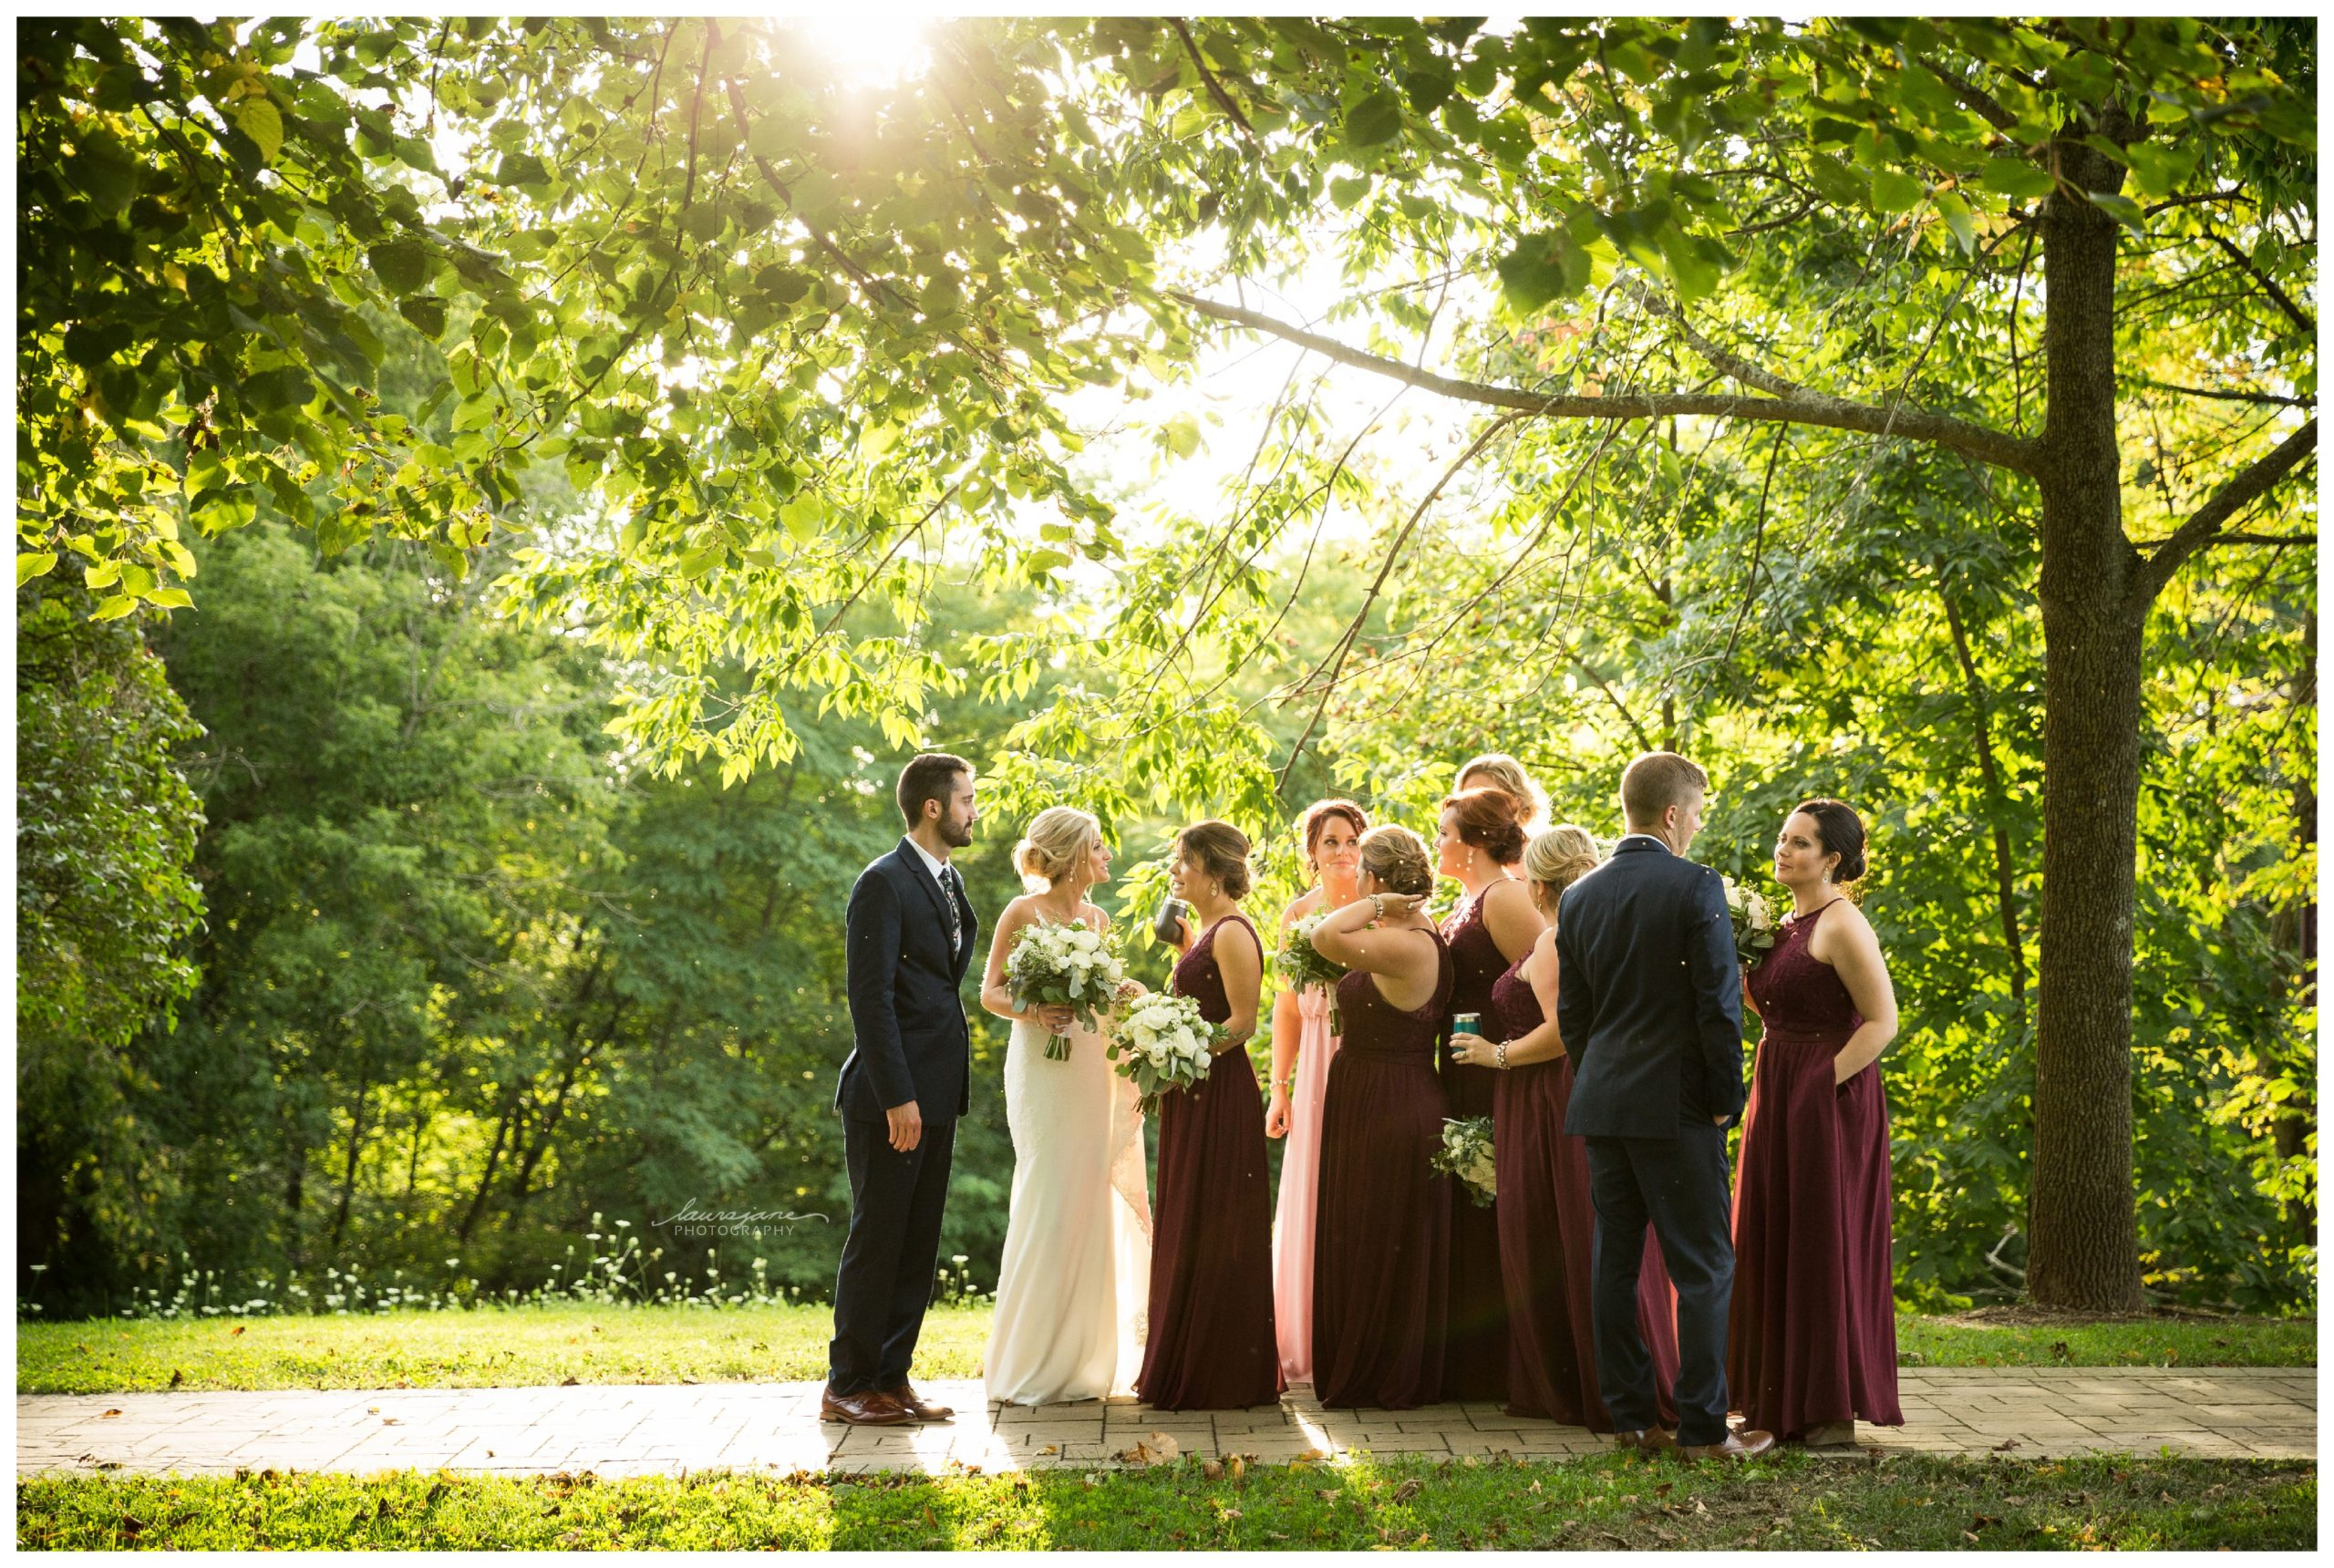 Bridal Party Candids at Richfield Wedding